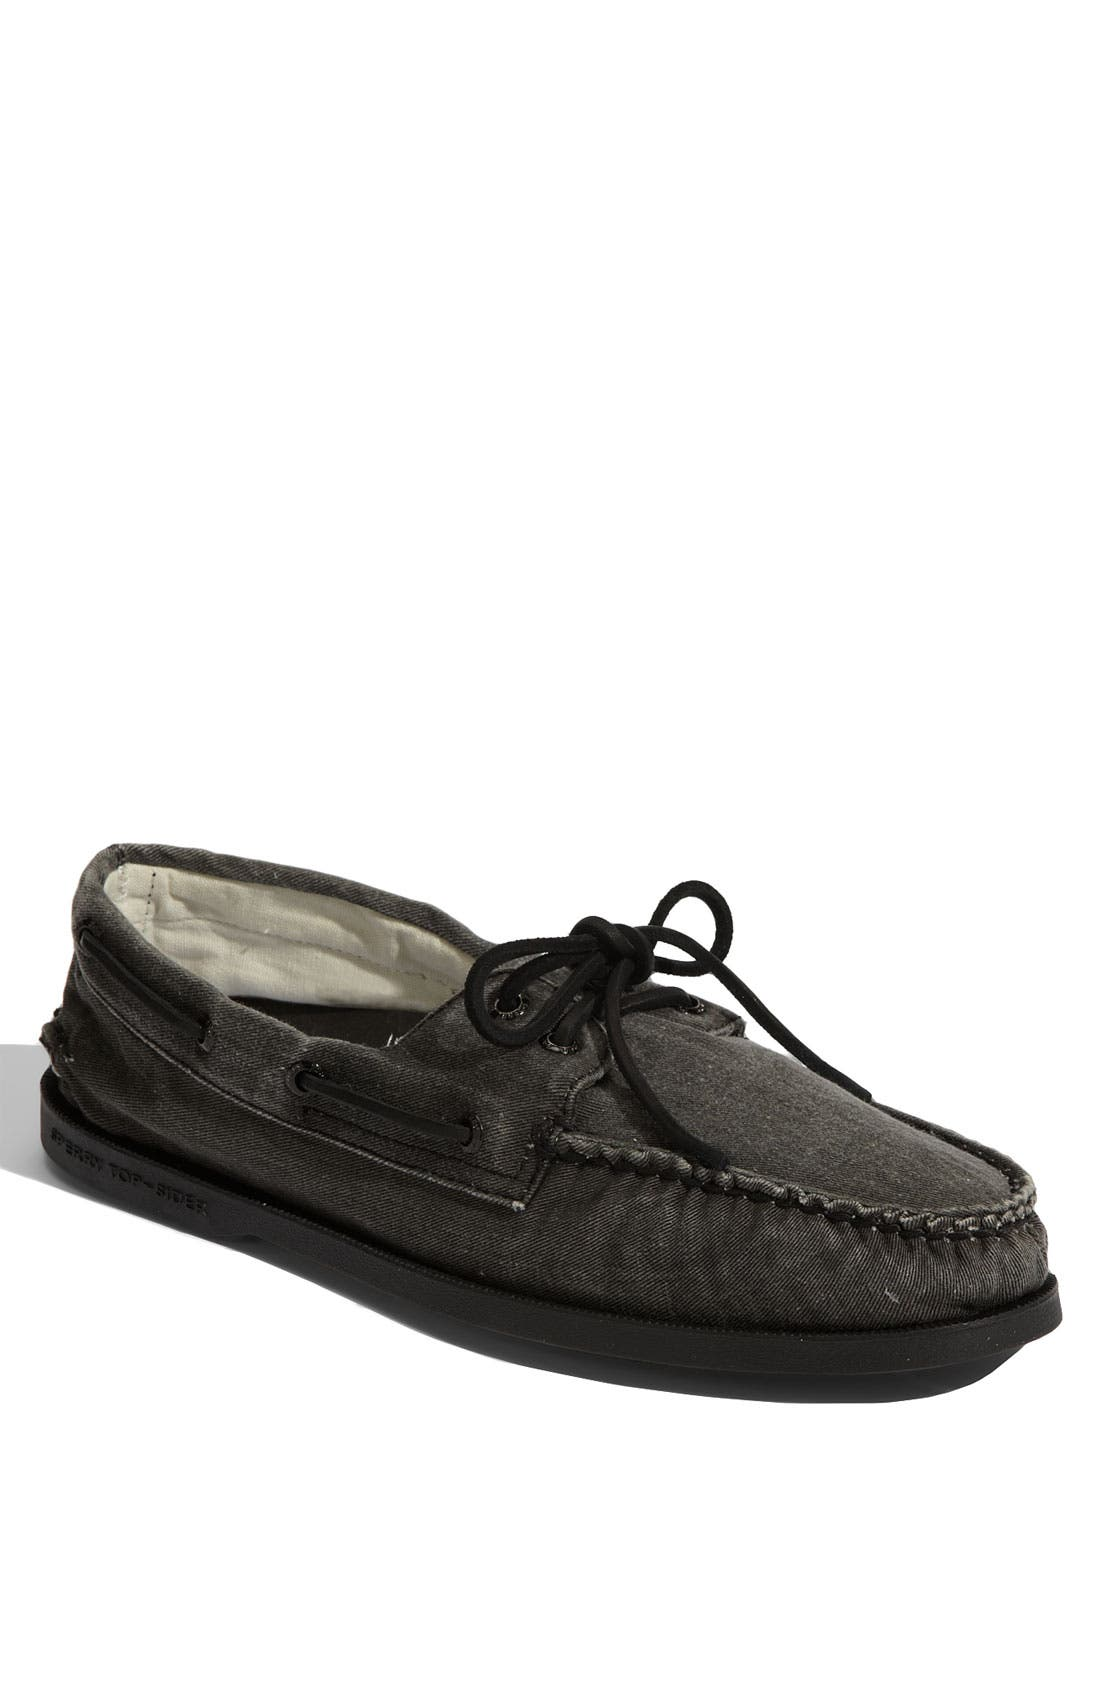 Main Image - Sperry Top-Sider® 'Authentic Original' Canvas Boat Shoe (Men)